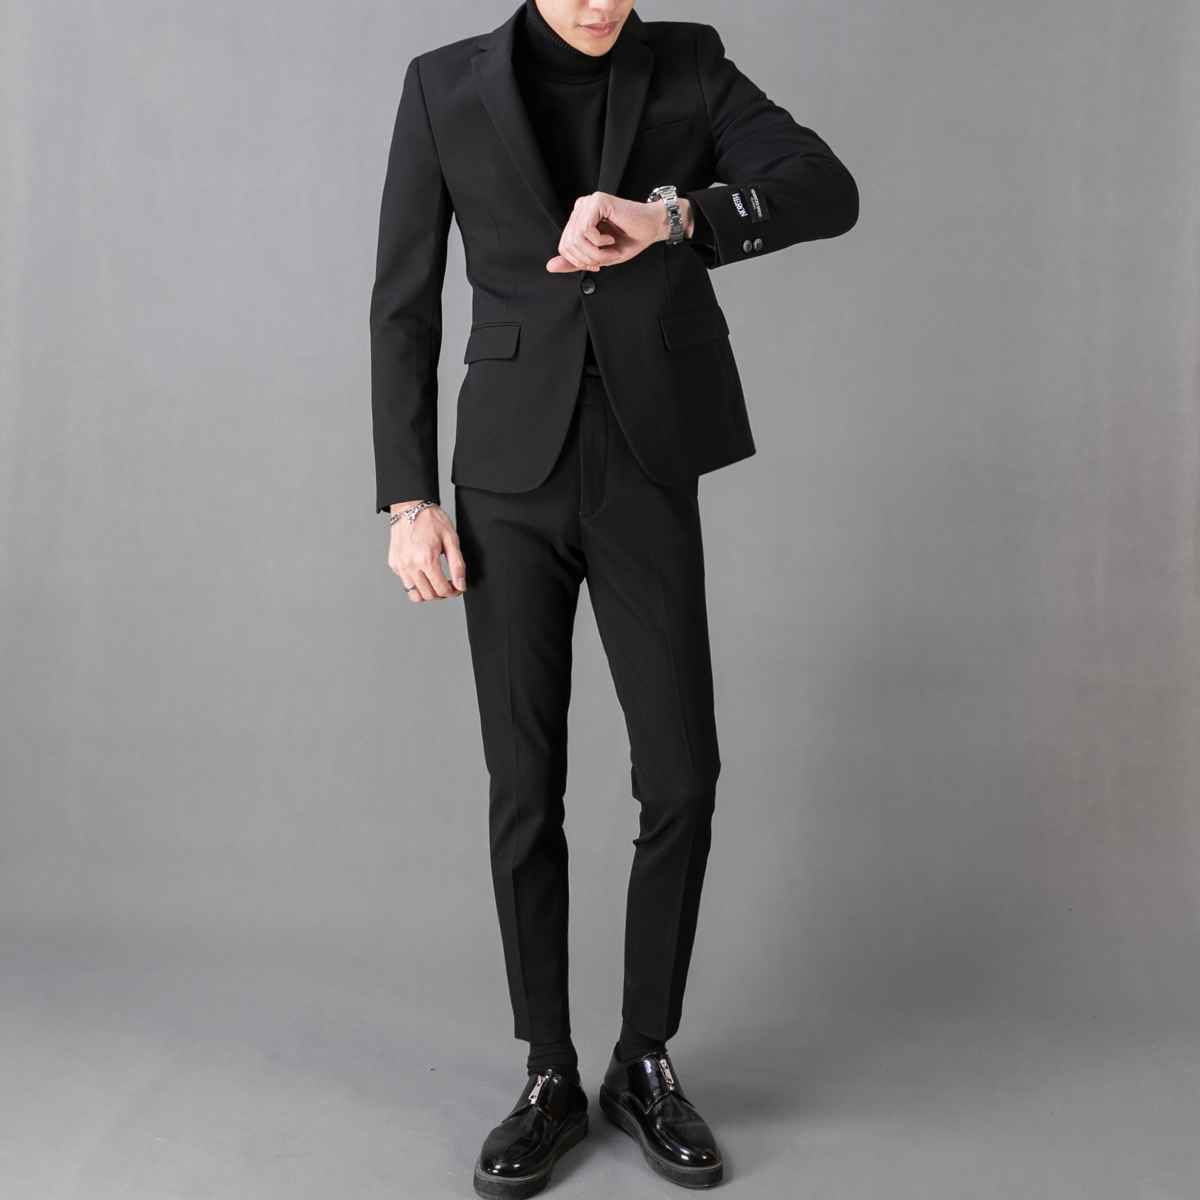 Black (suit + Sweater + Trousers)